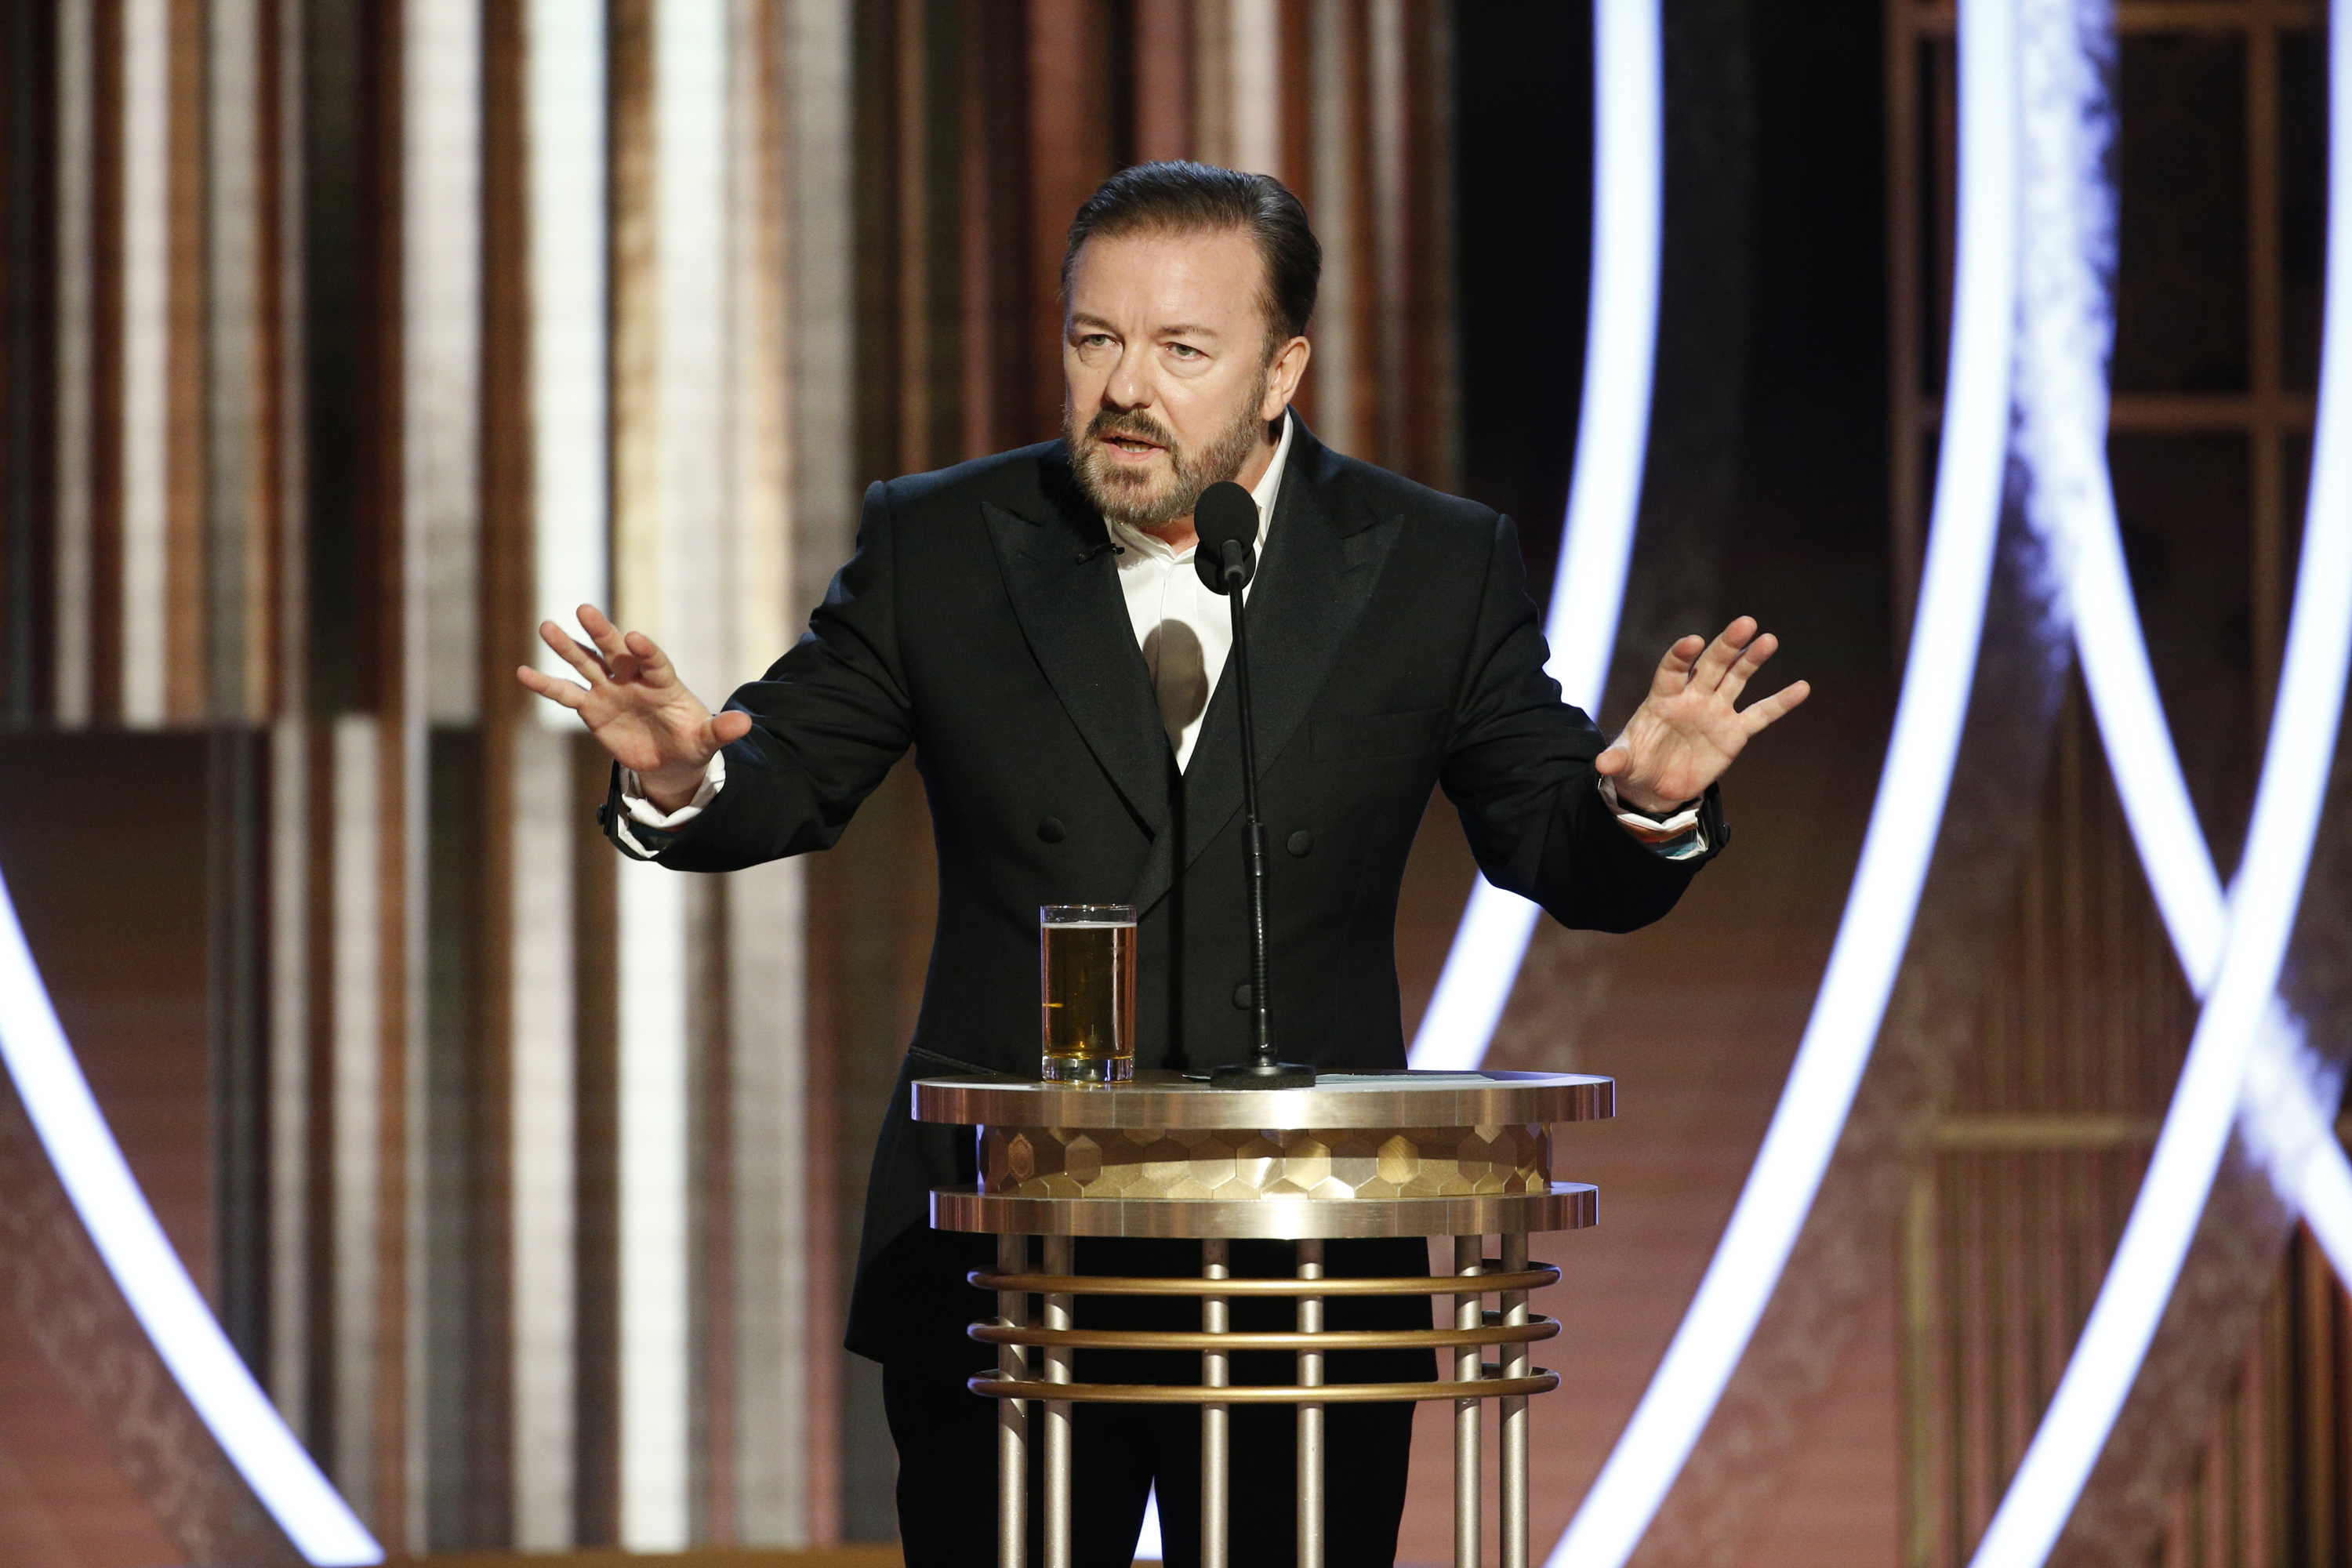 Golden Globes viewing remains strong despite demo slip